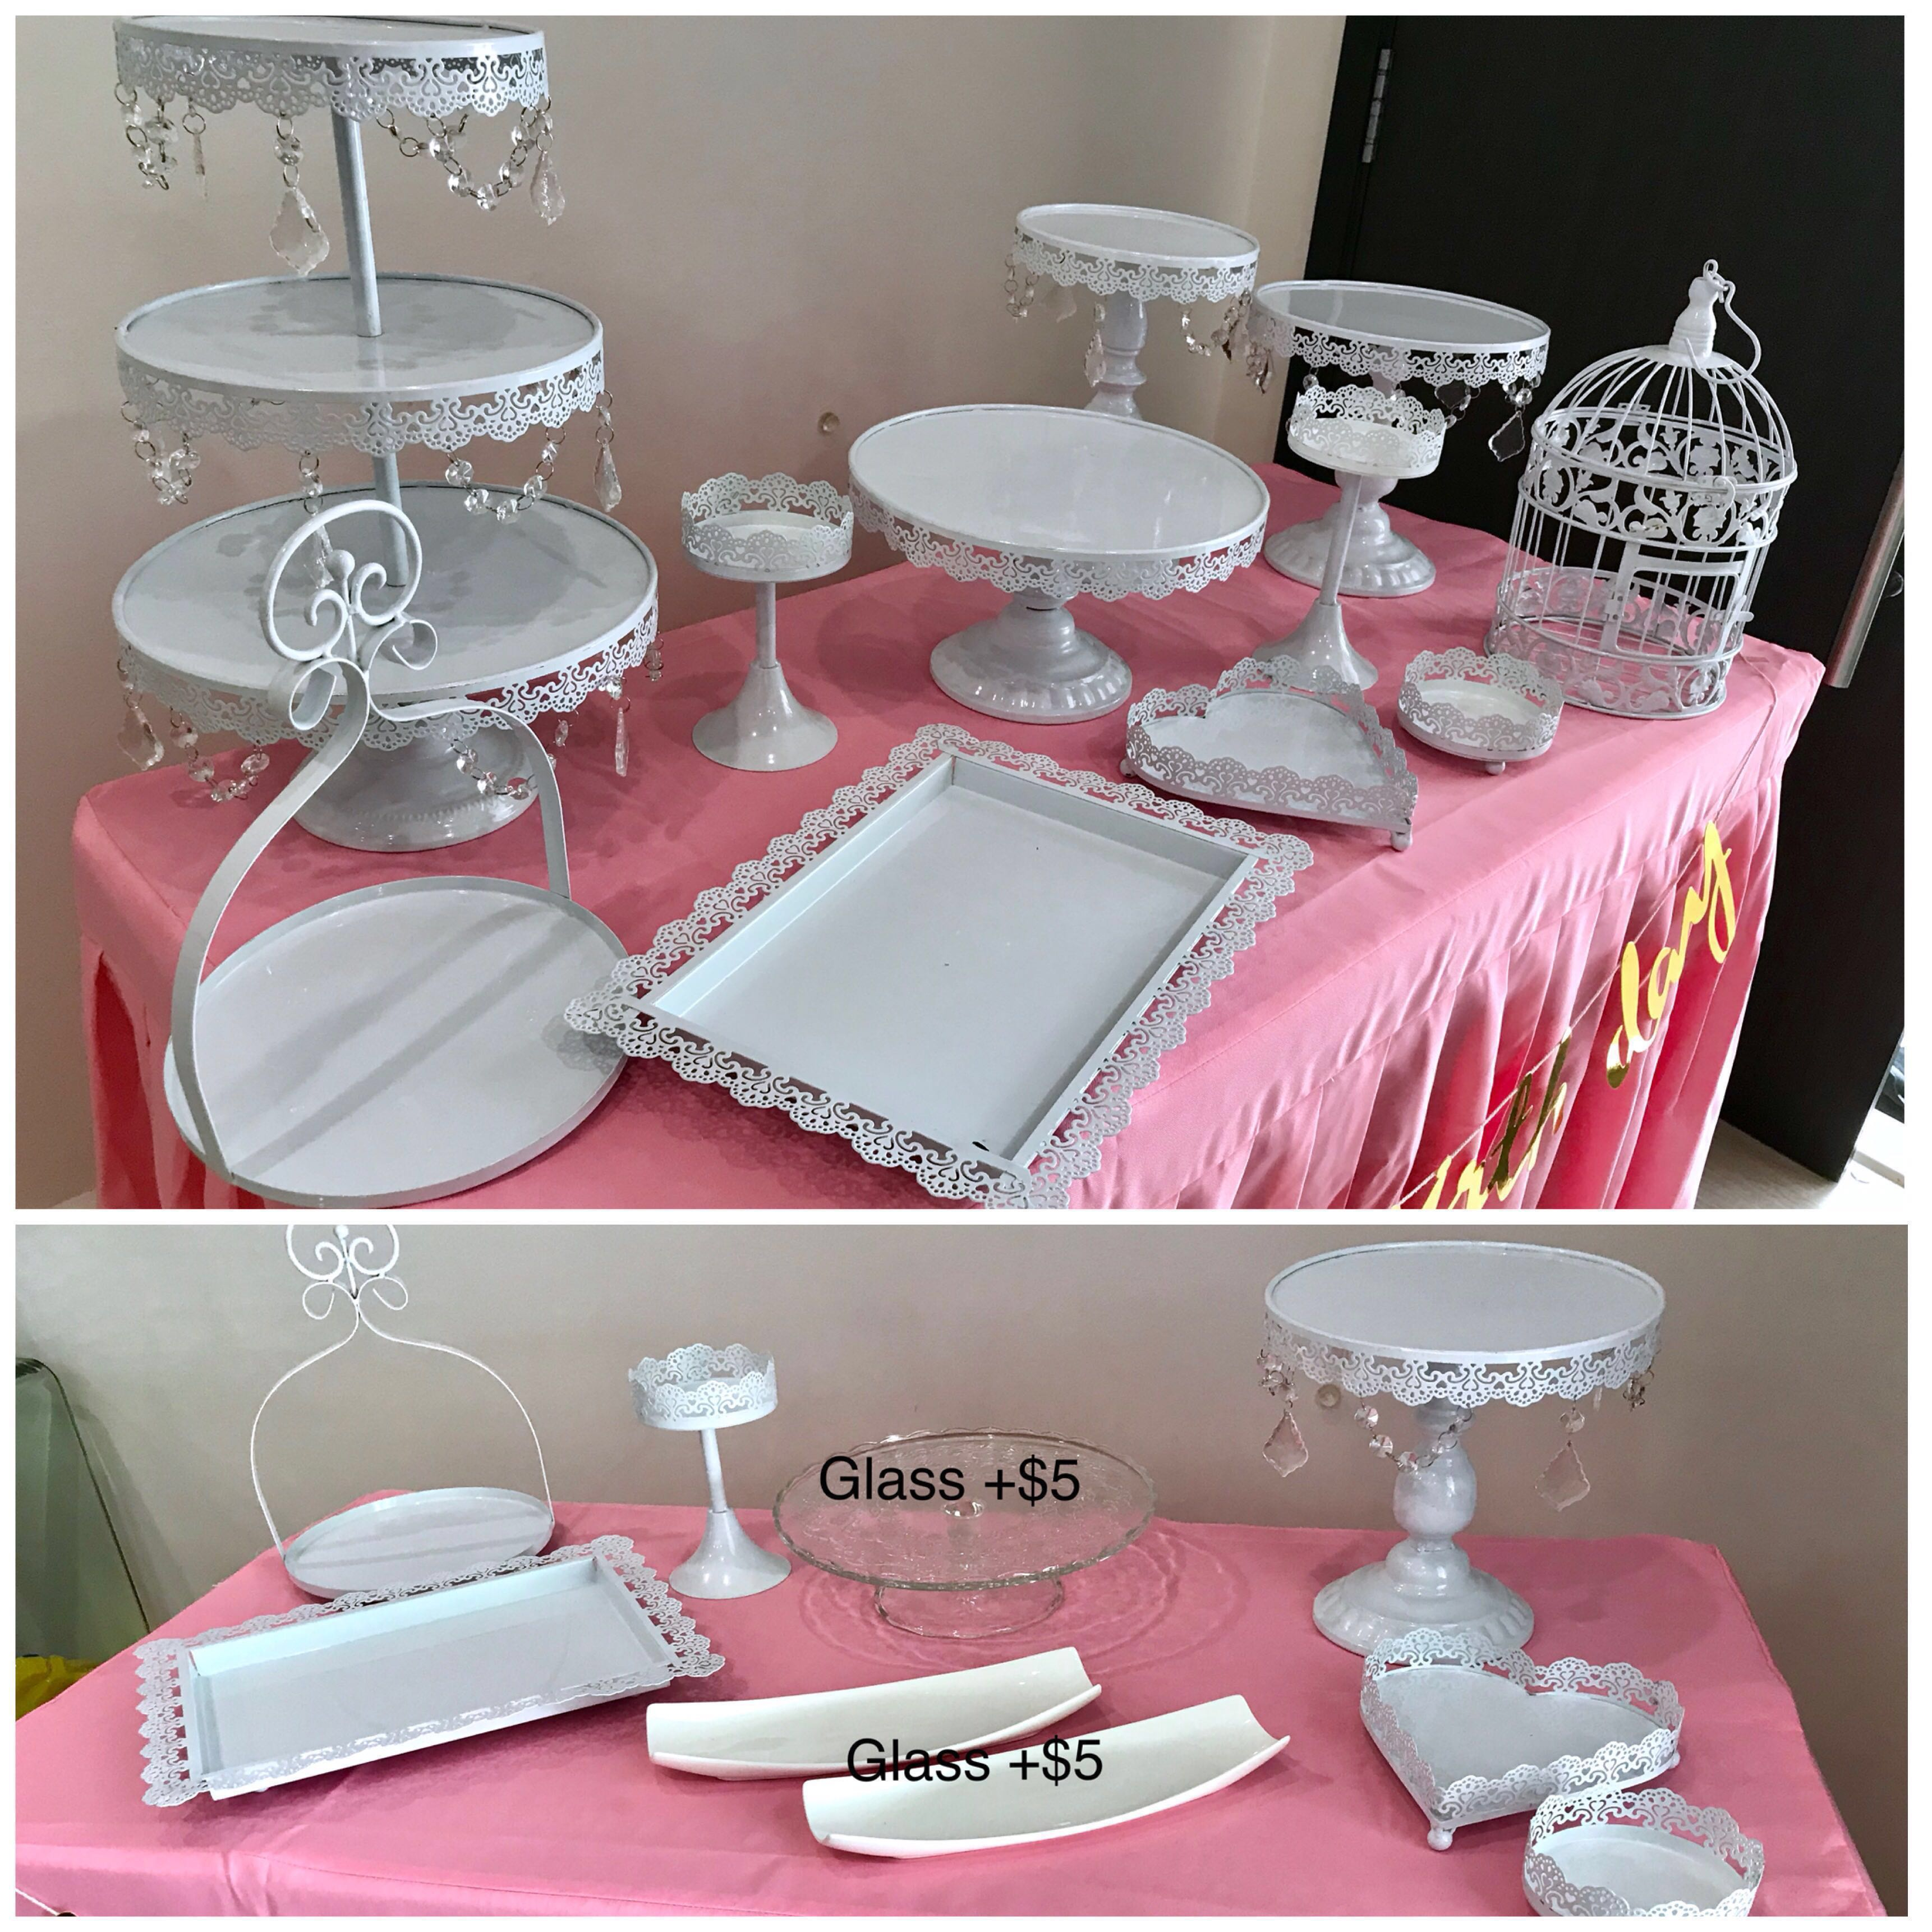 Rental Of Desert Table Display & Decorations For Party, Design